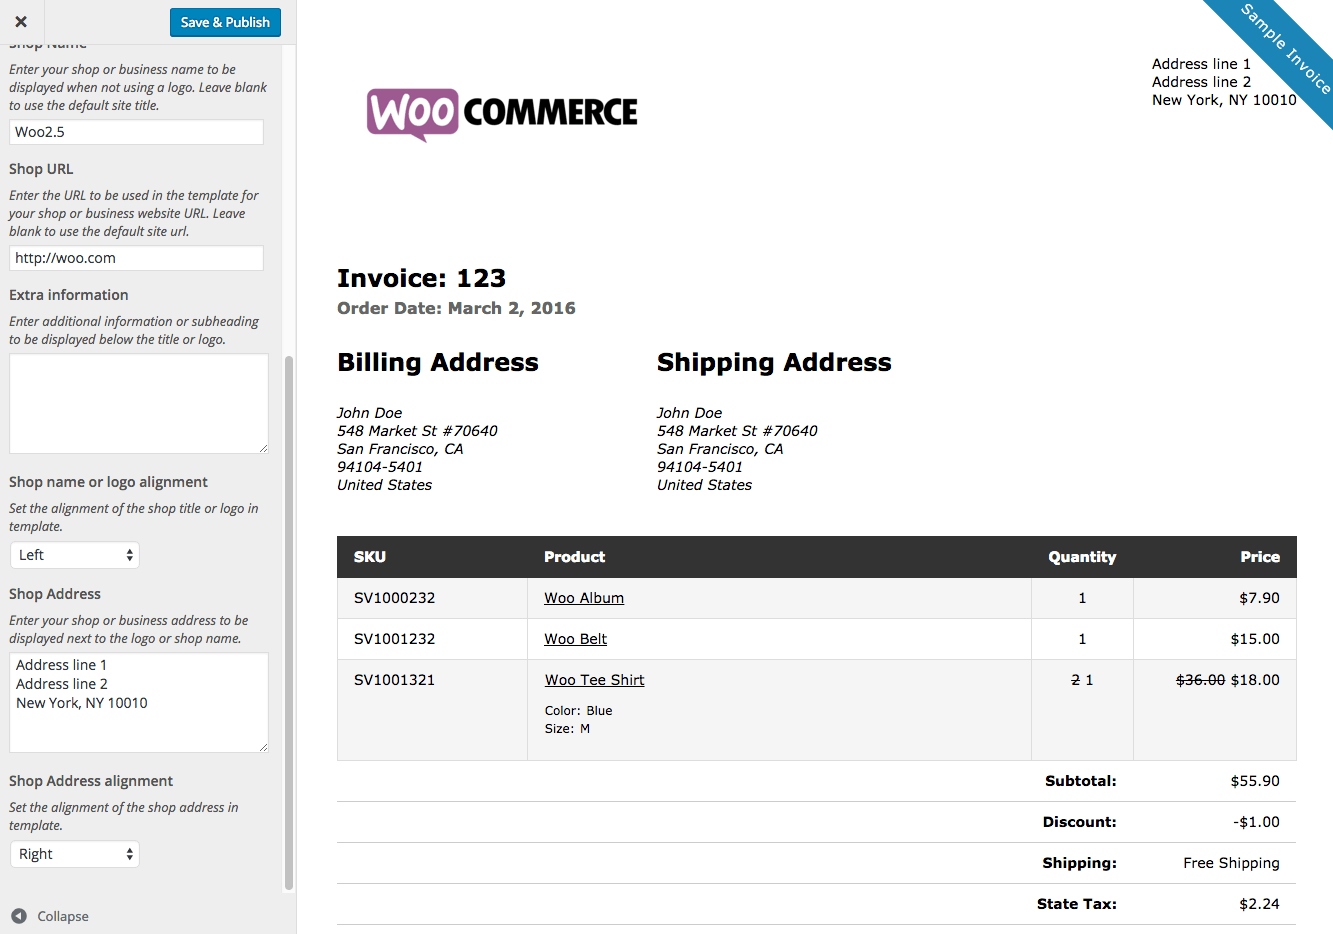 Sandiegolocksmithsus  Nice Woocommerce Print Invoices Amp Packing Lists  Woocommerce Docs With Remarkable Woocommerce Print Invoices  Packing Lists Customizer With Astonishing English Invoice Template Also Invoice Scanner Software In Addition Tax Invoice Receipt And Msrp Vs Invoice Vs True Market Value As Well As Honda Accord Dealer Invoice Additionally Online Invoice Maker Free From Docswoocommercecom With Sandiegolocksmithsus  Remarkable Woocommerce Print Invoices Amp Packing Lists  Woocommerce Docs With Astonishing Woocommerce Print Invoices  Packing Lists Customizer And Nice English Invoice Template Also Invoice Scanner Software In Addition Tax Invoice Receipt From Docswoocommercecom